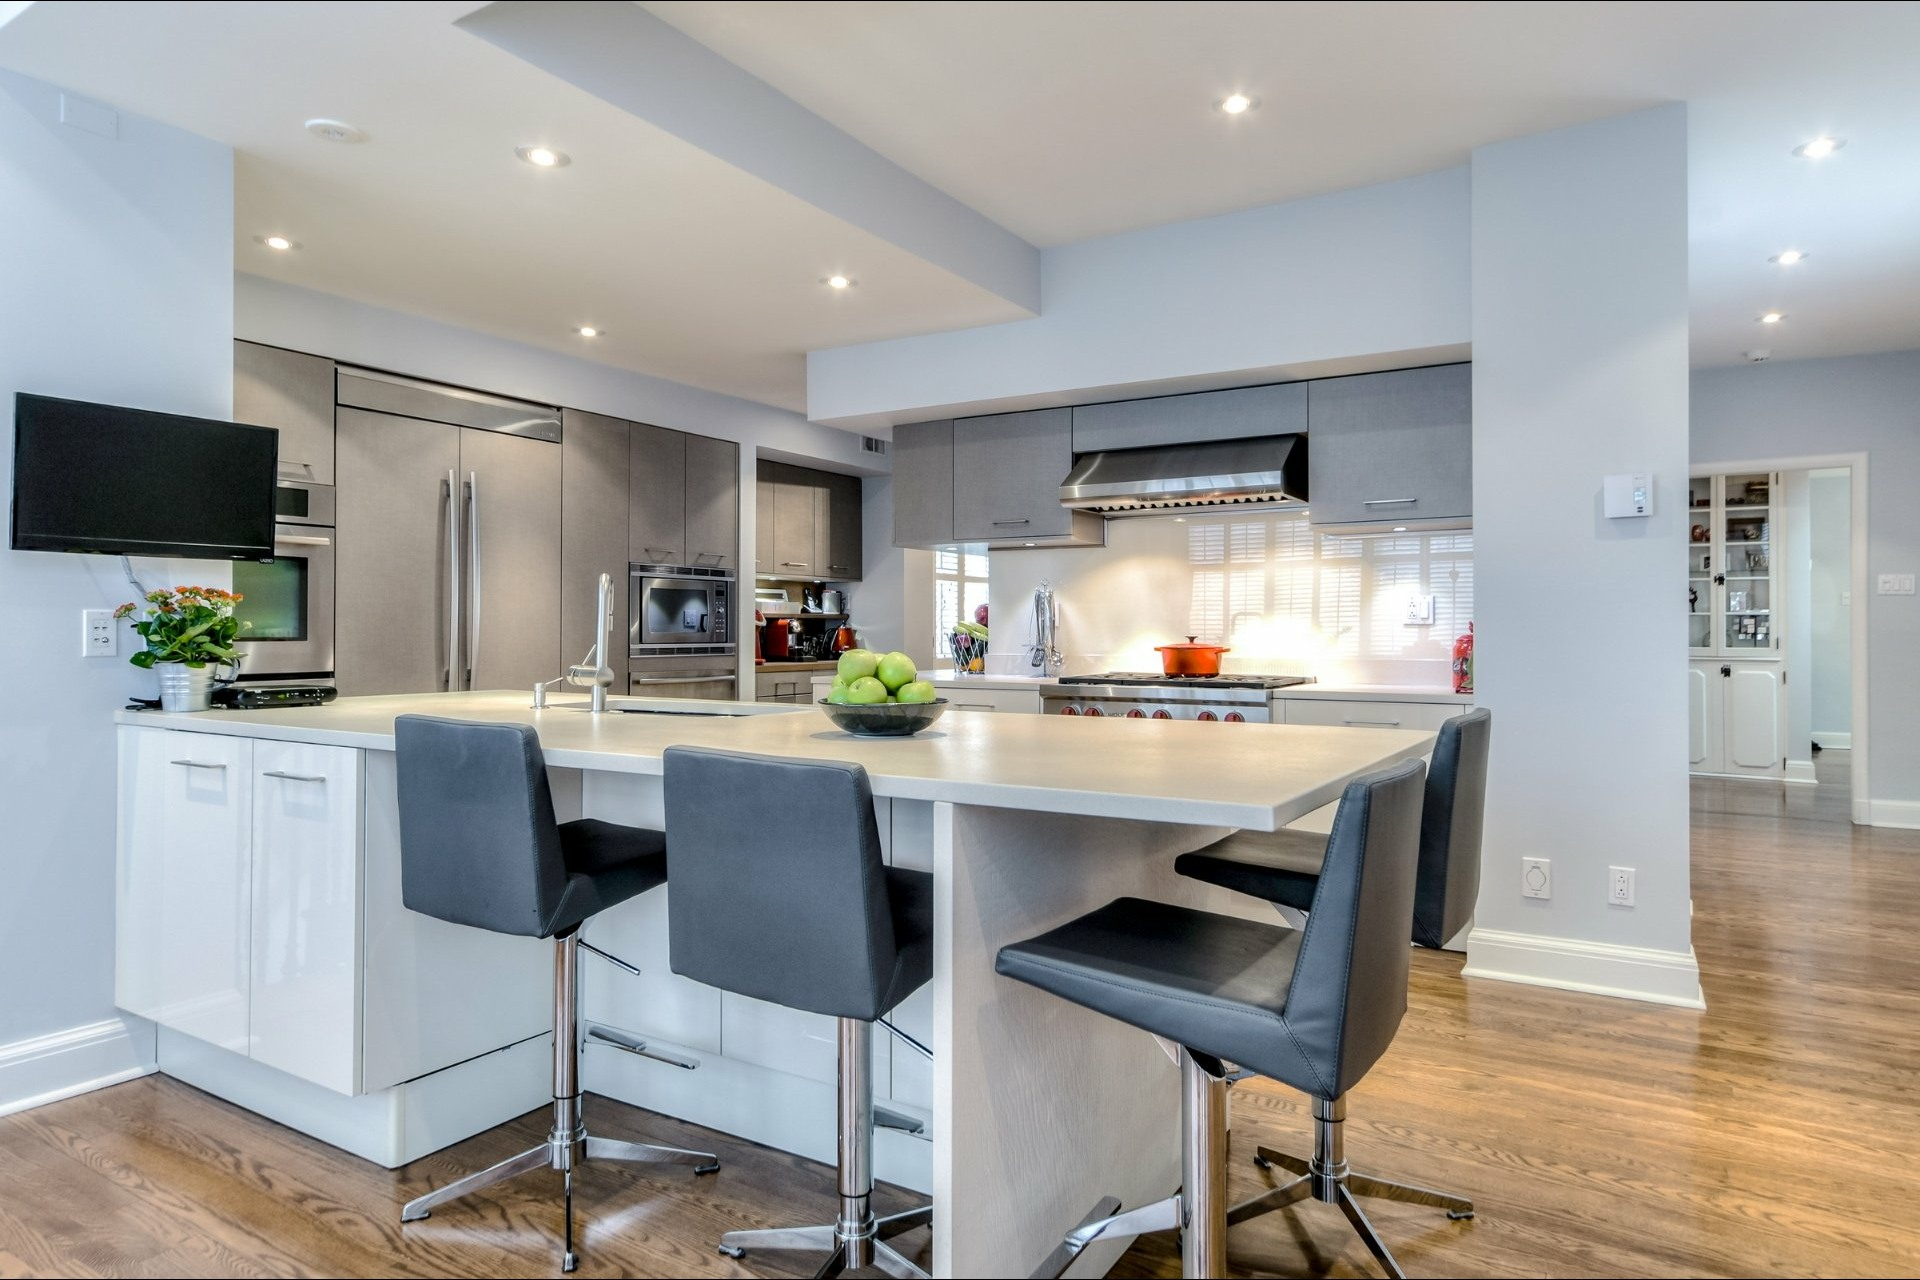 image 6 - House For sale Westmount - 15 rooms